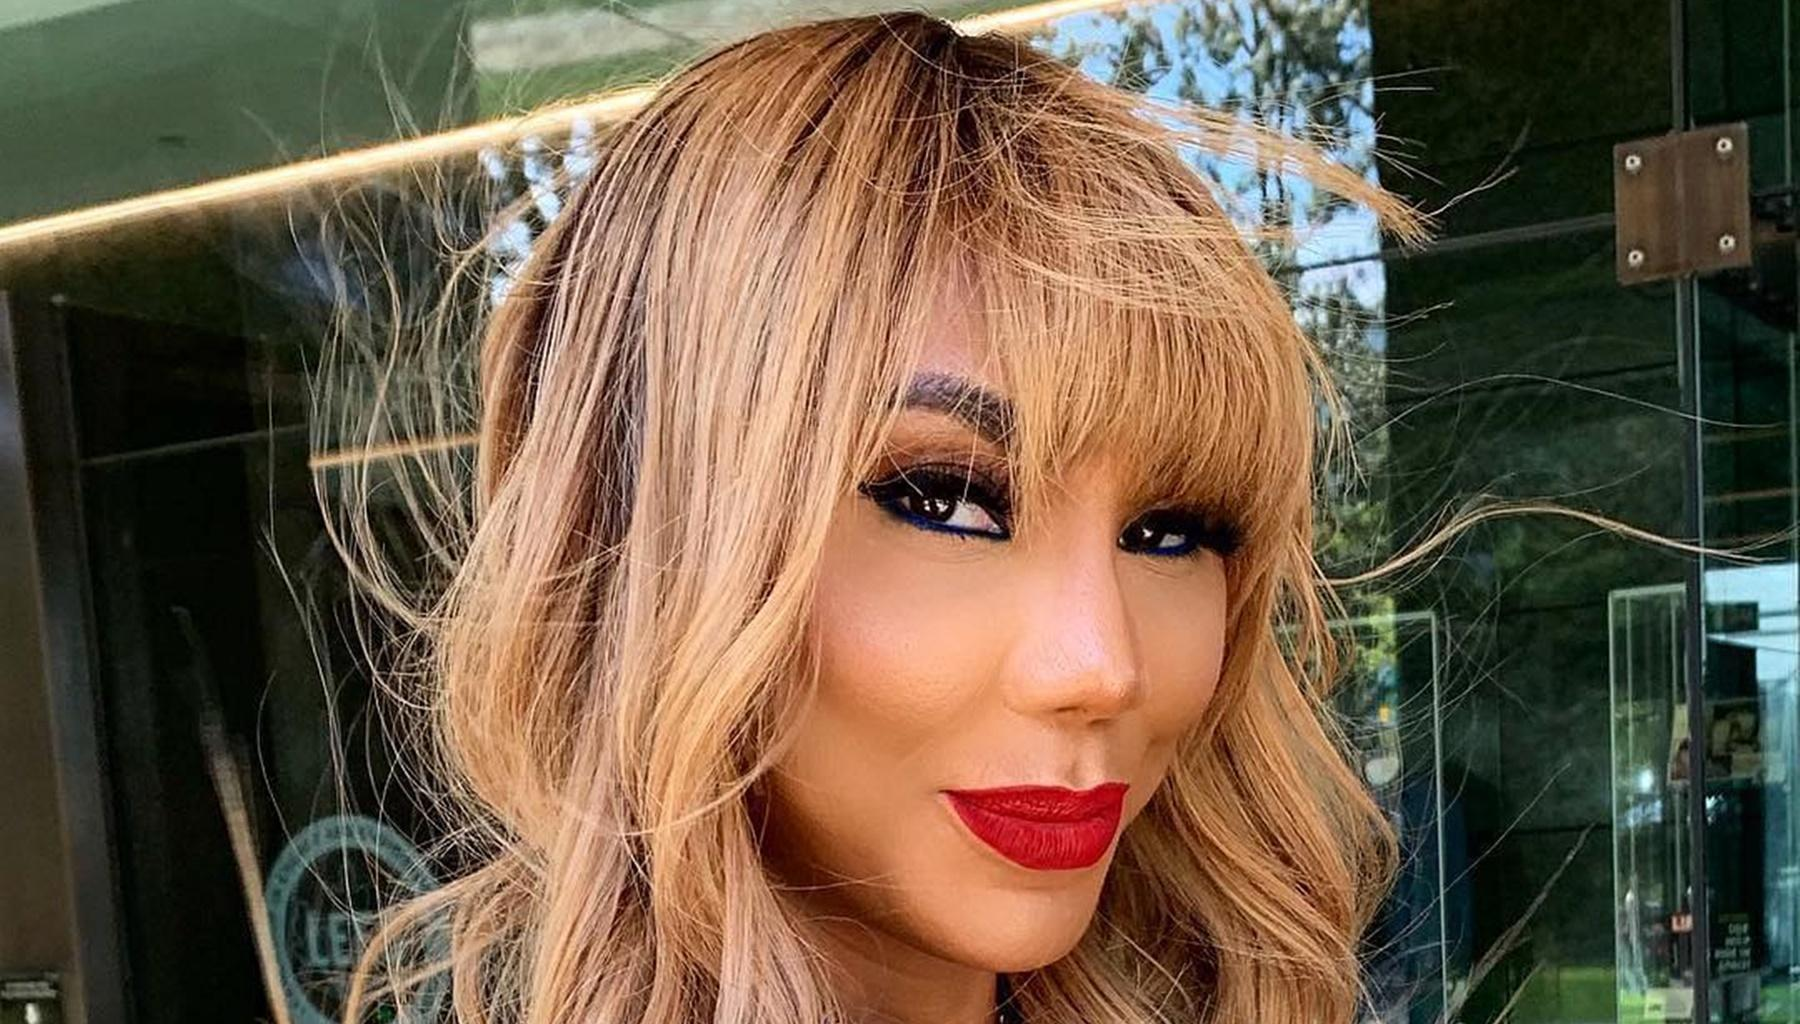 Tamar Braxton's Latest Photo In Which She's Wearing Nothing But Earrings Has People Confusing Her With Toni Braxton; David Adefeso Is In Awe - See His Romantic Comment